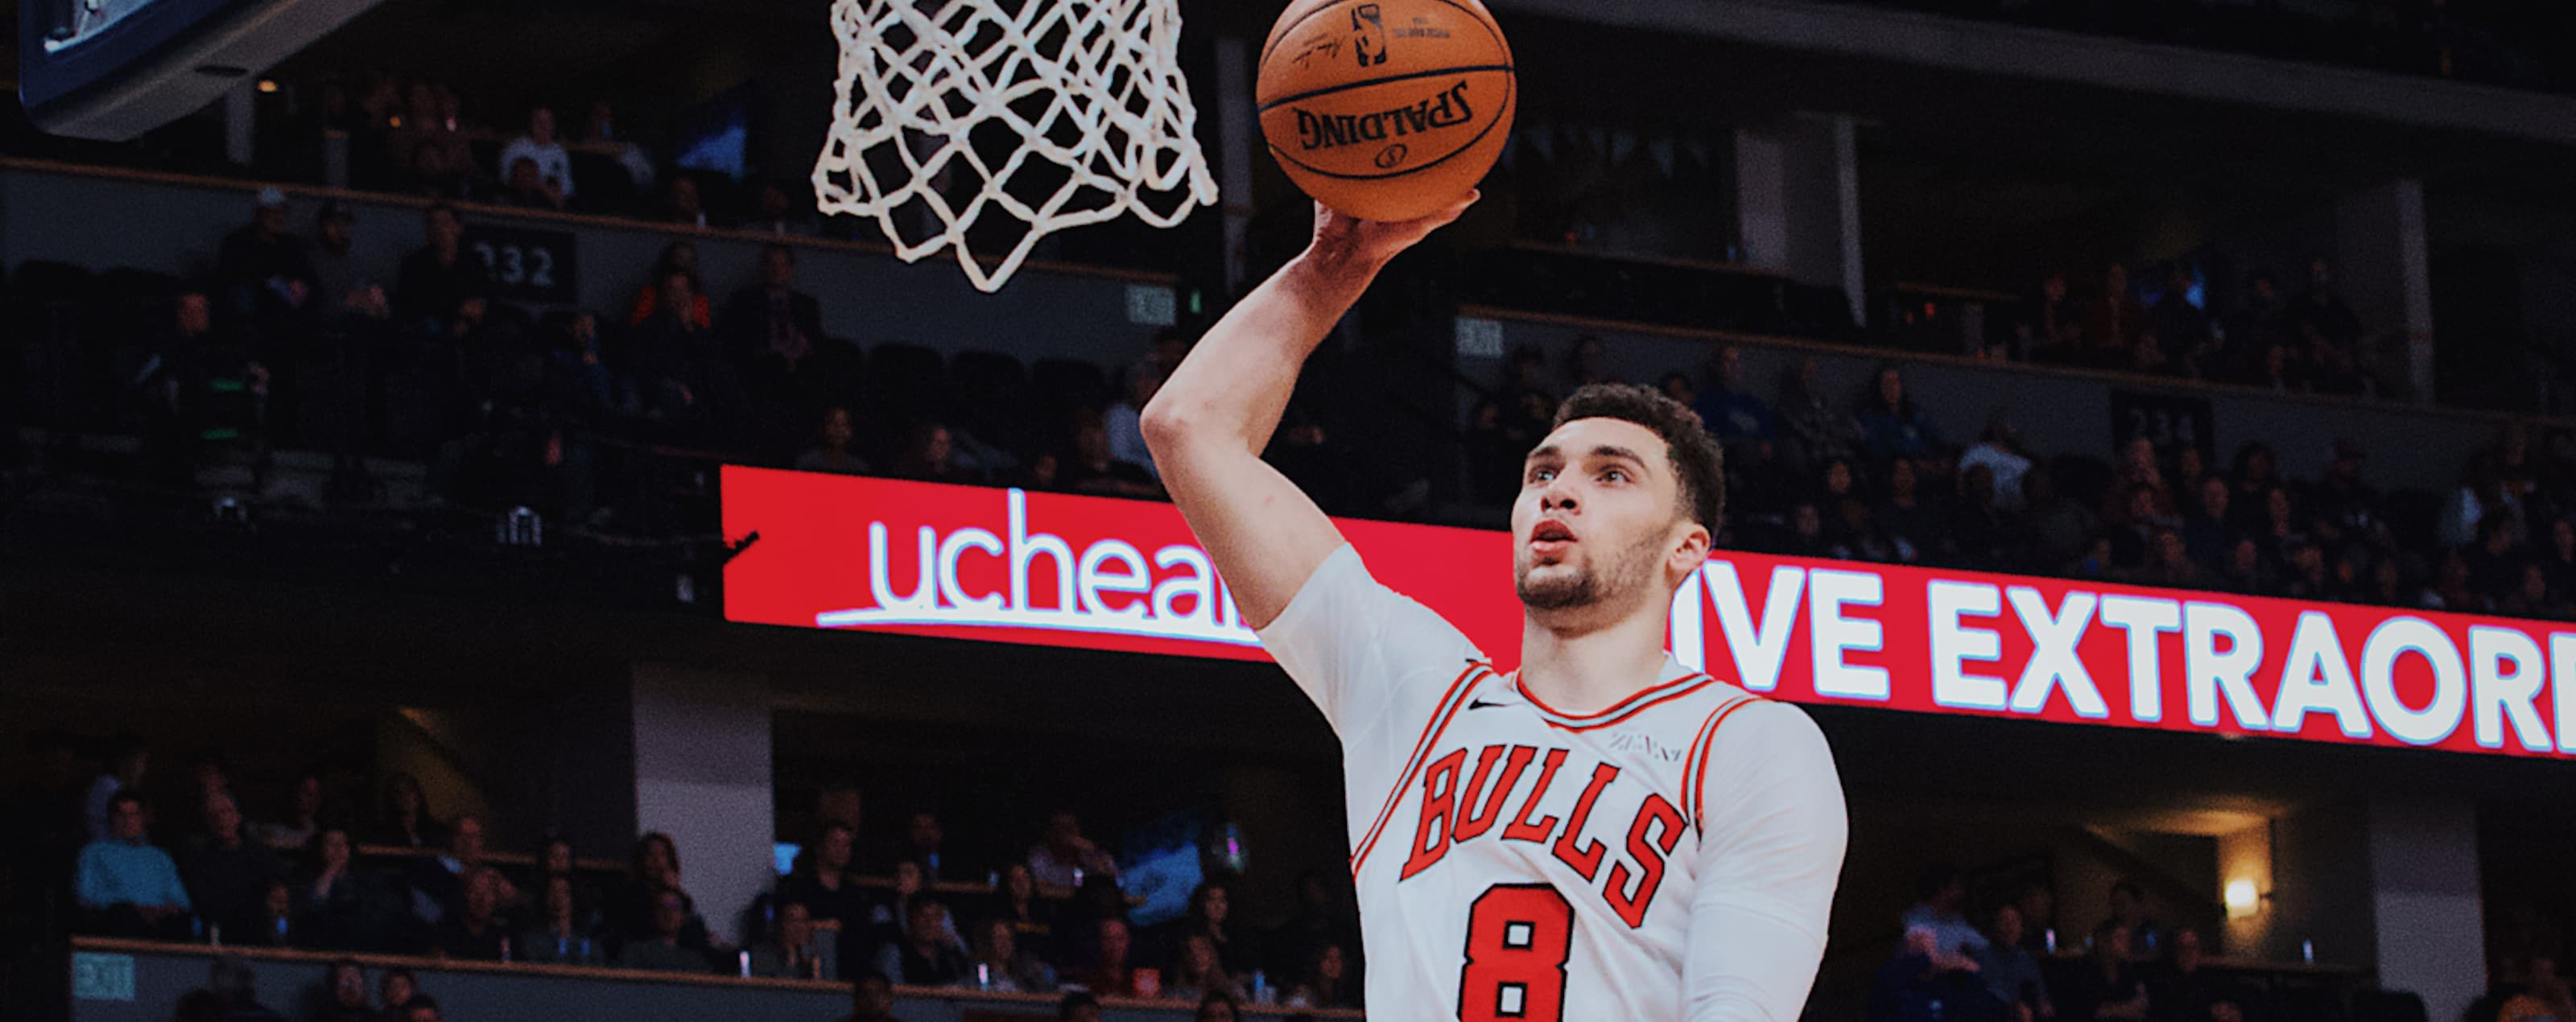 Zach LaVine of the Chicago Bulls goes for the dunk against the Denver Nuggets.